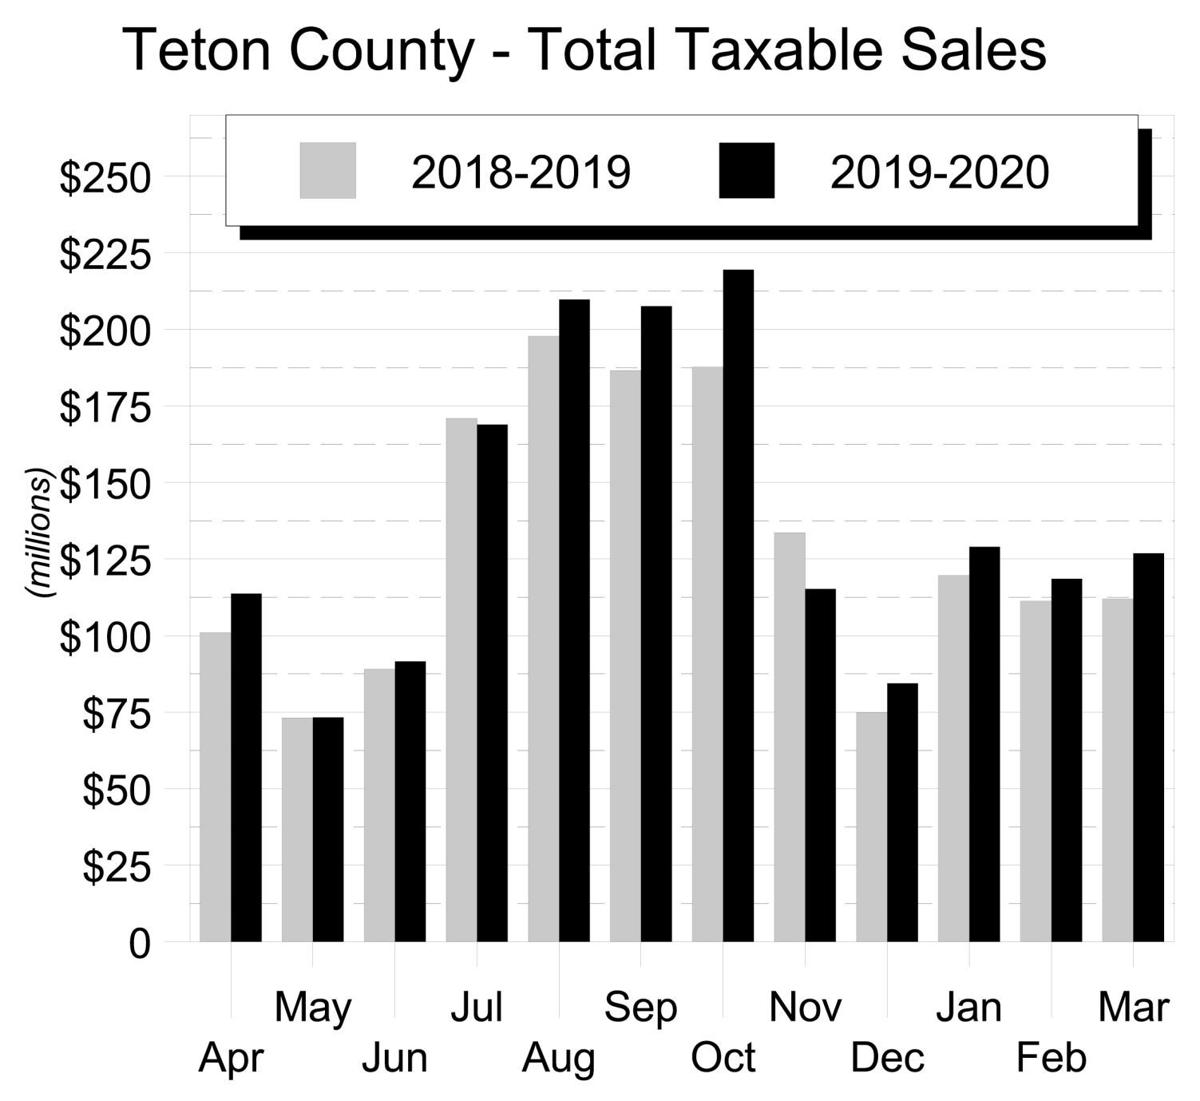 Teton County - Total Taxable Sales